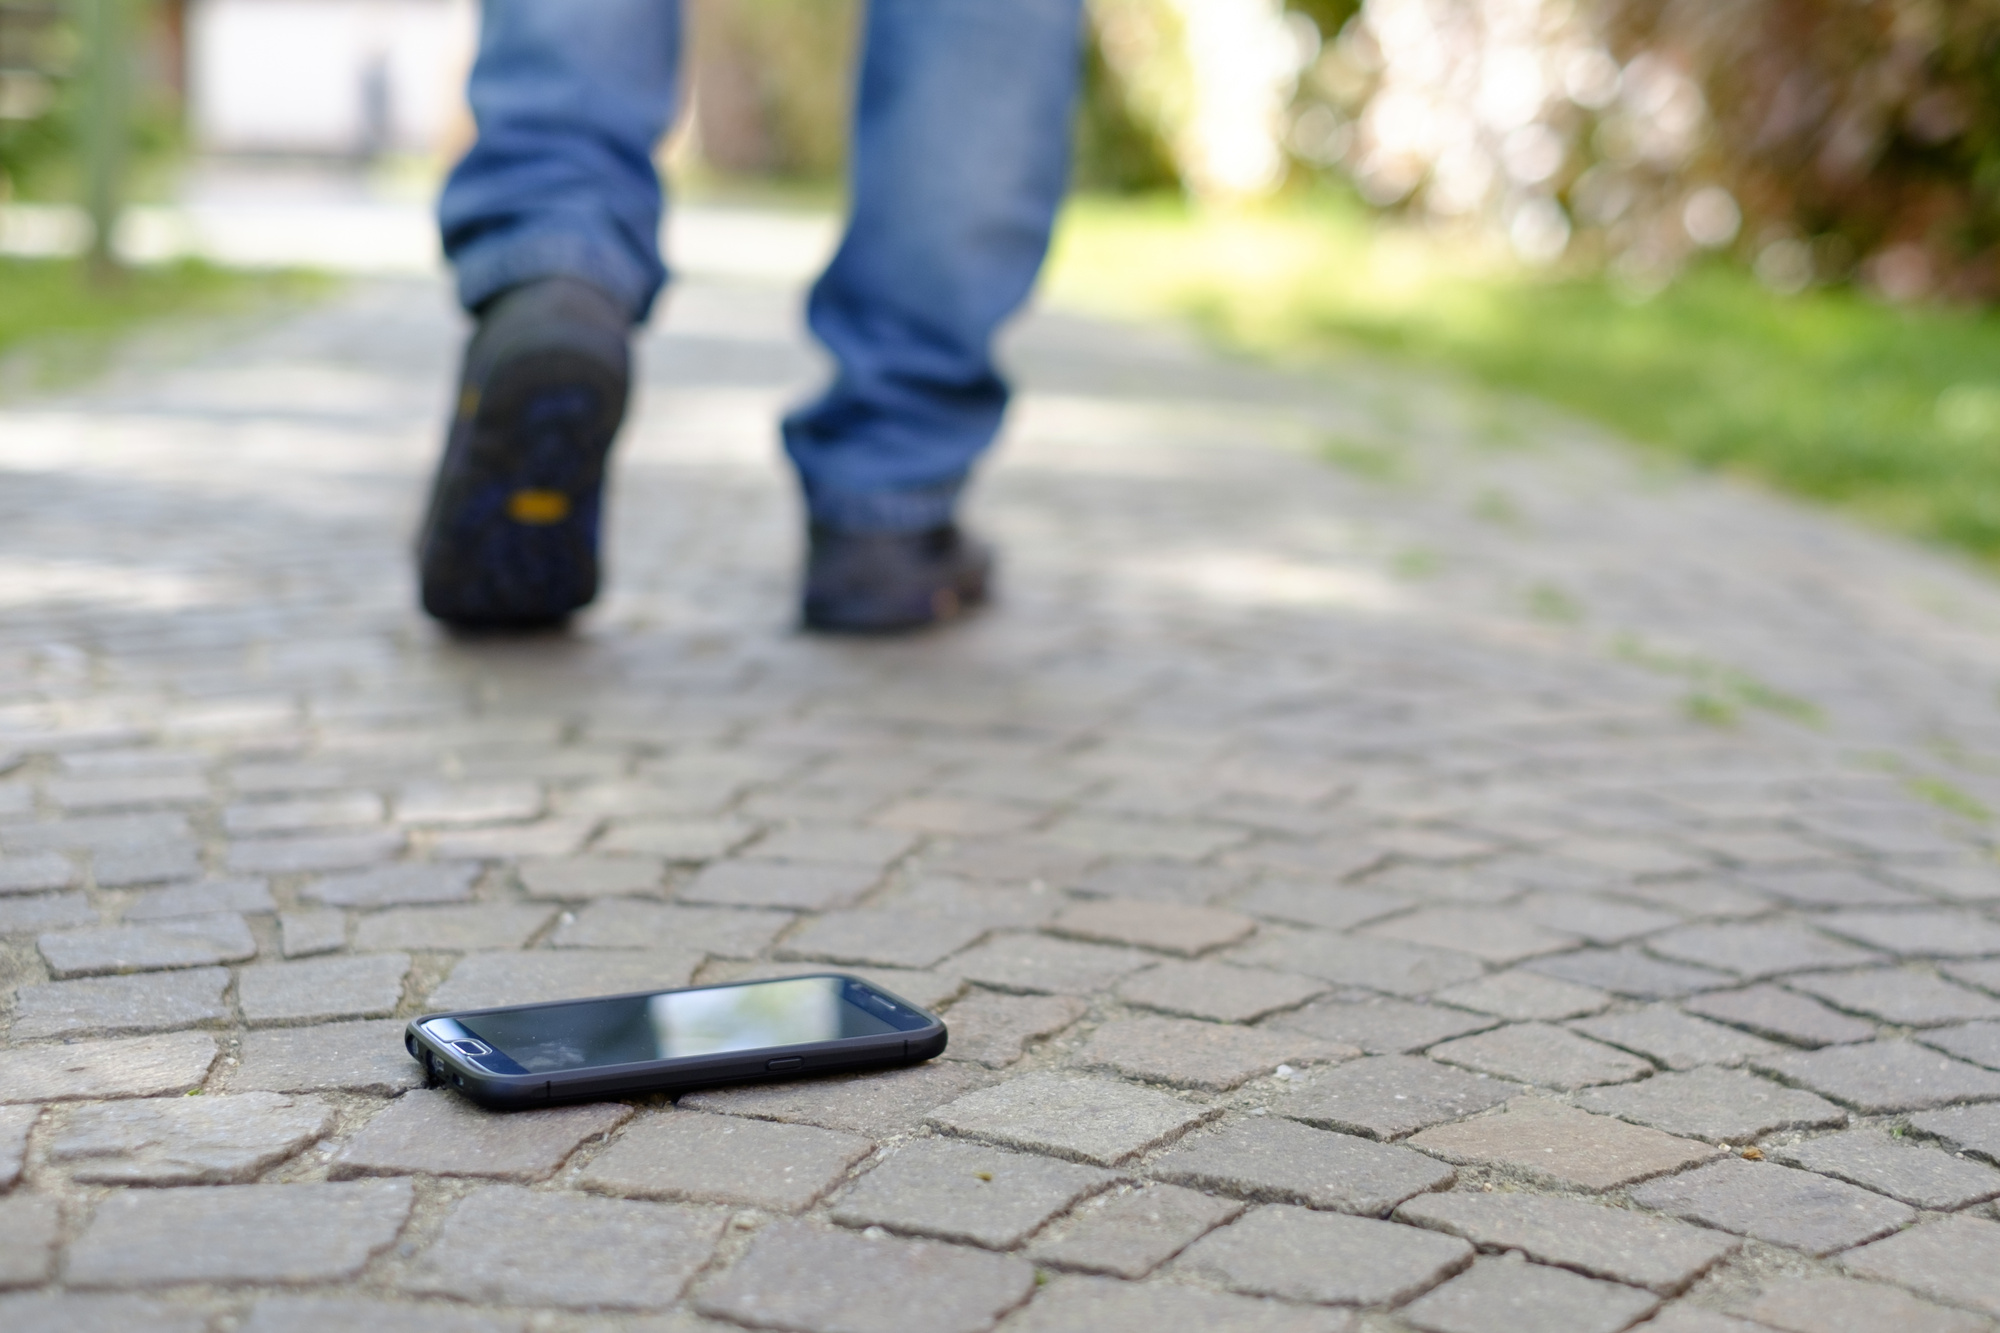 I Want My Phone Back! What to Do When Your Phone Gets Stolen